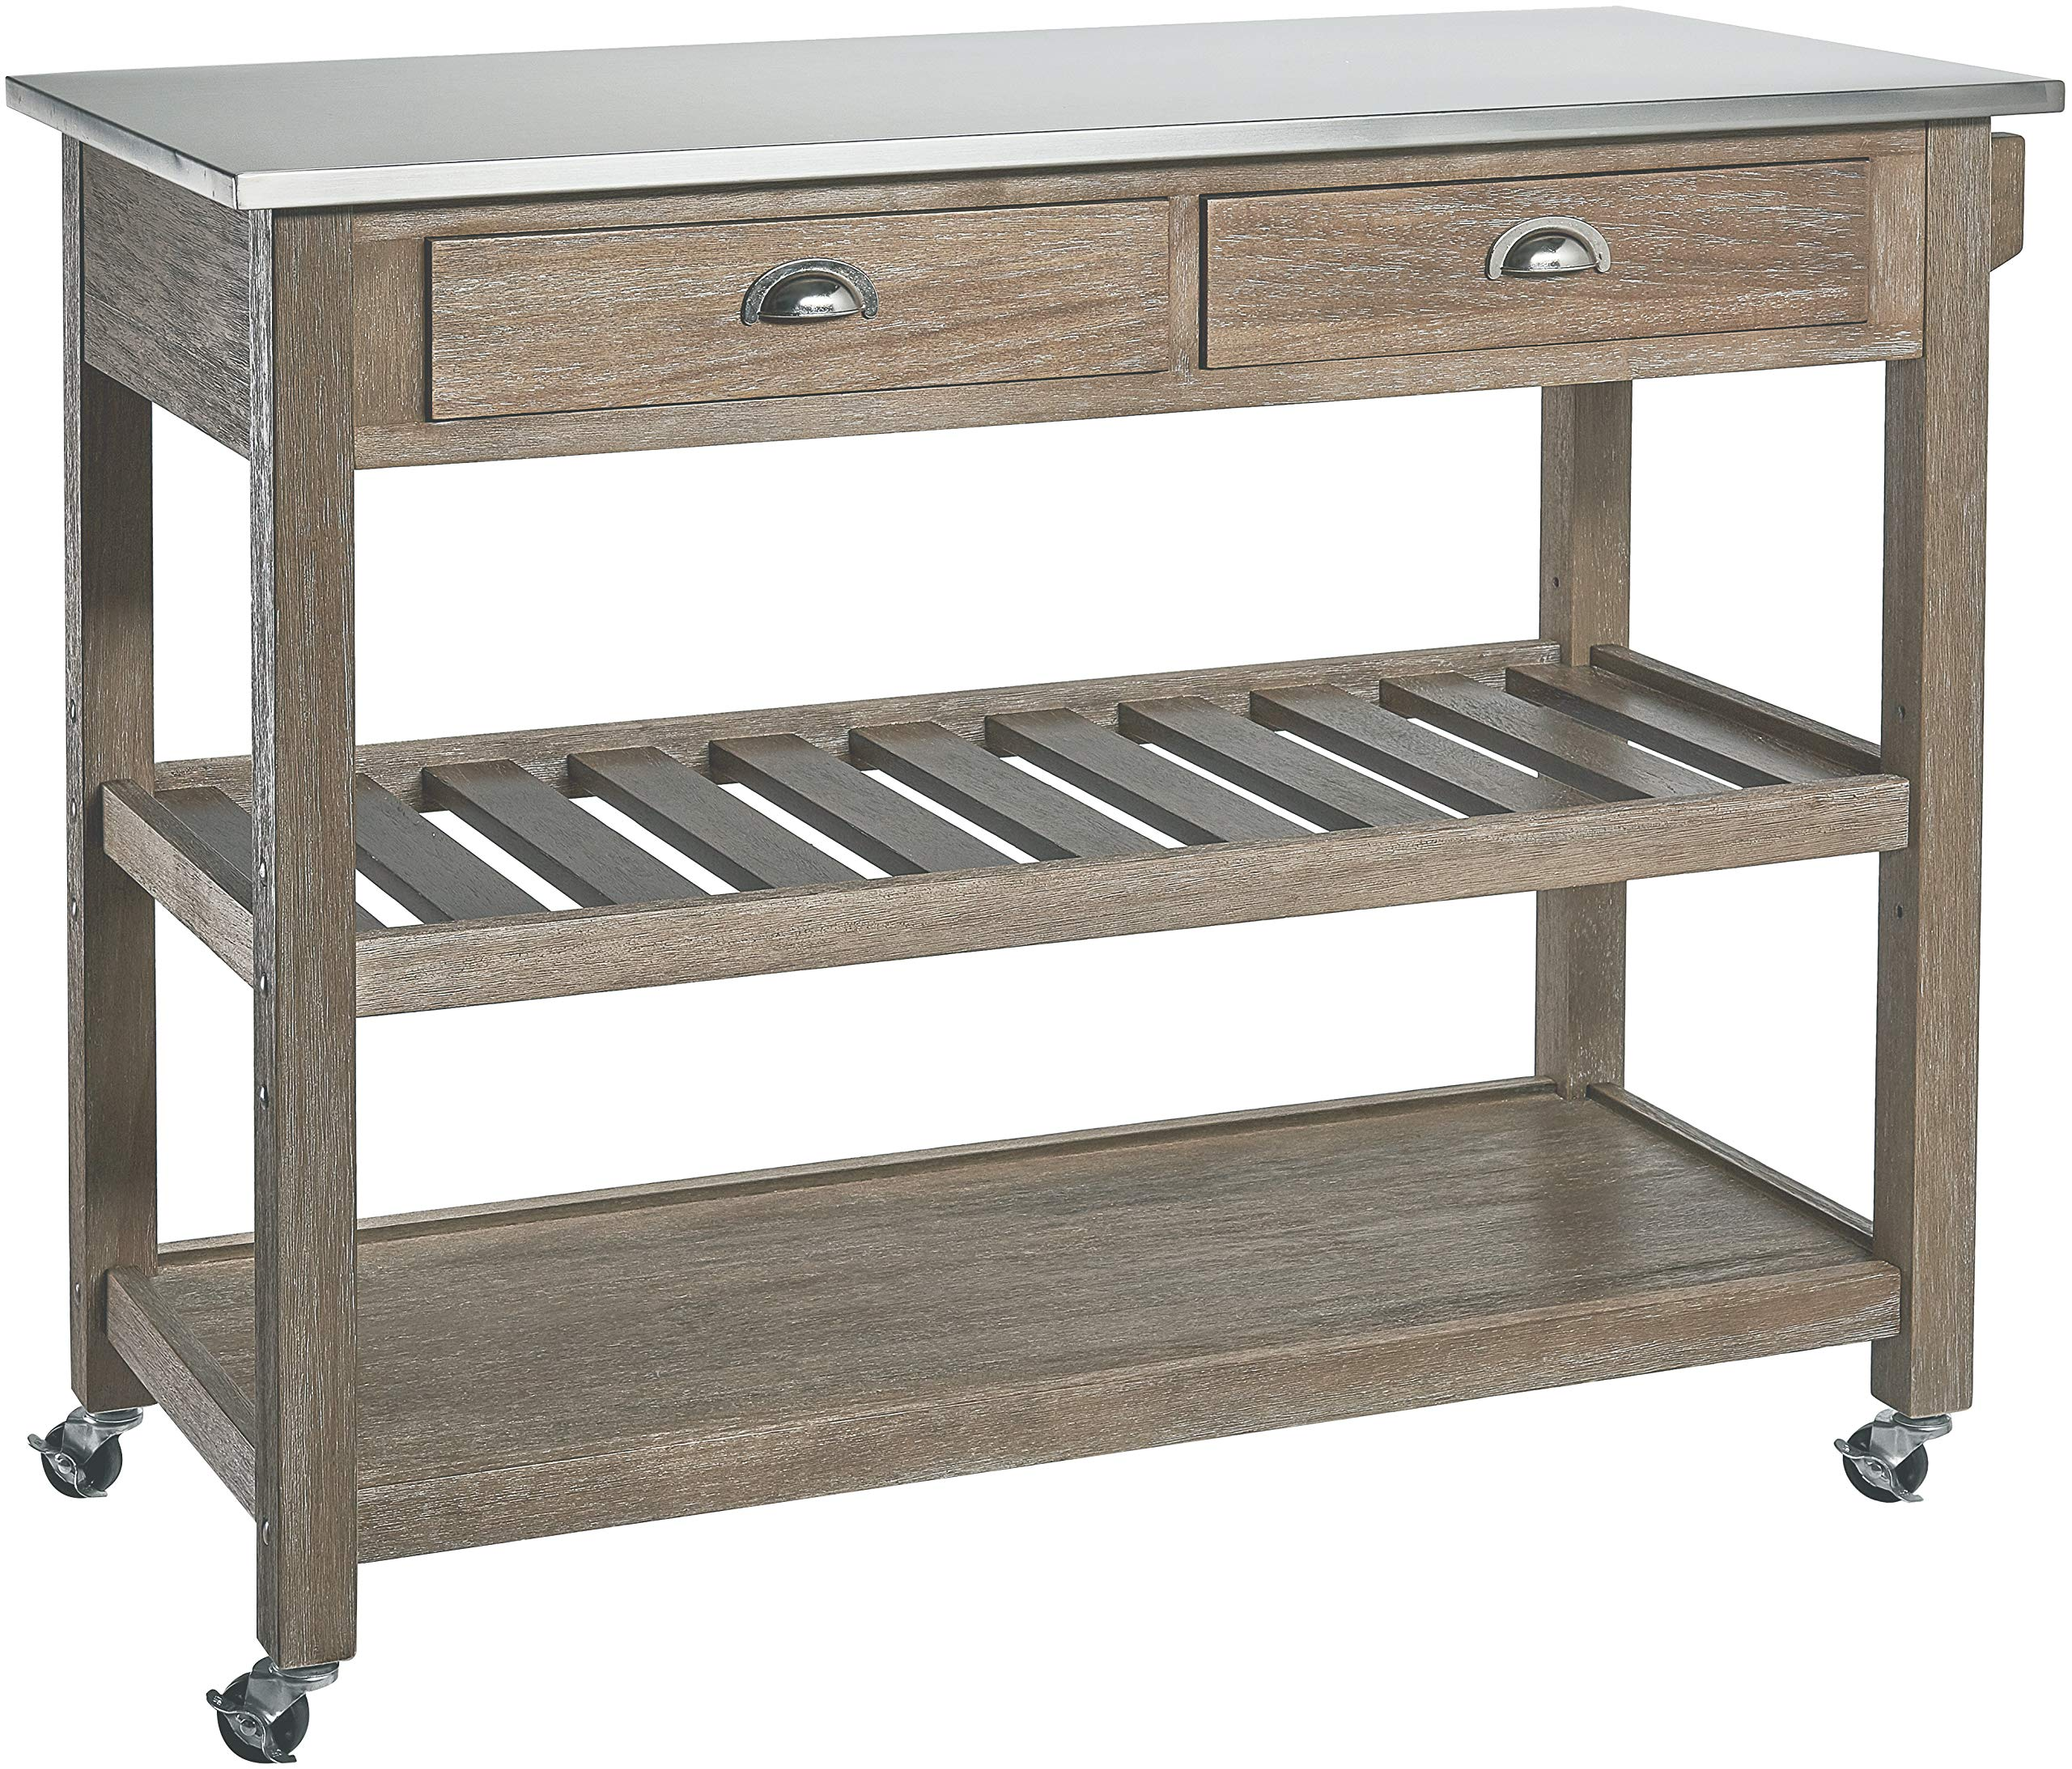 Ball & Cast Solano 2Drawer Wire-Brush Rubberwood Kitchen Cart with Stainless-Steel Top, Grey